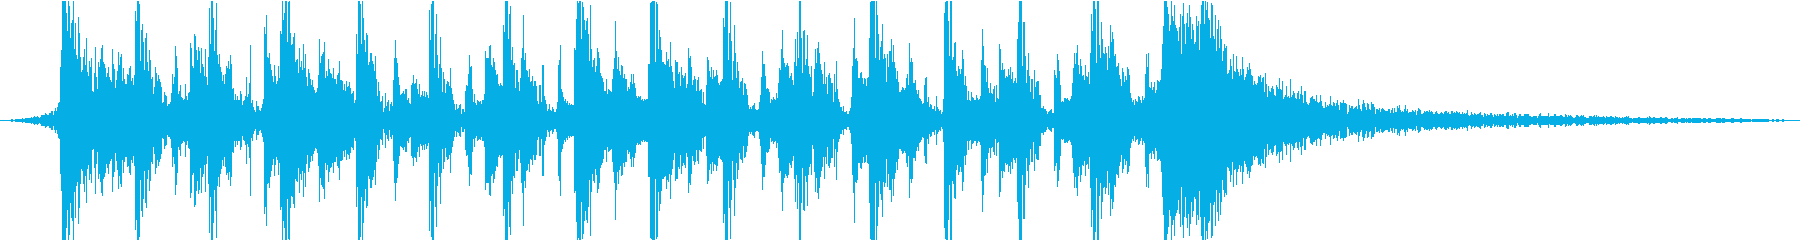 Cheer up bright funky pop's reproduced waveform